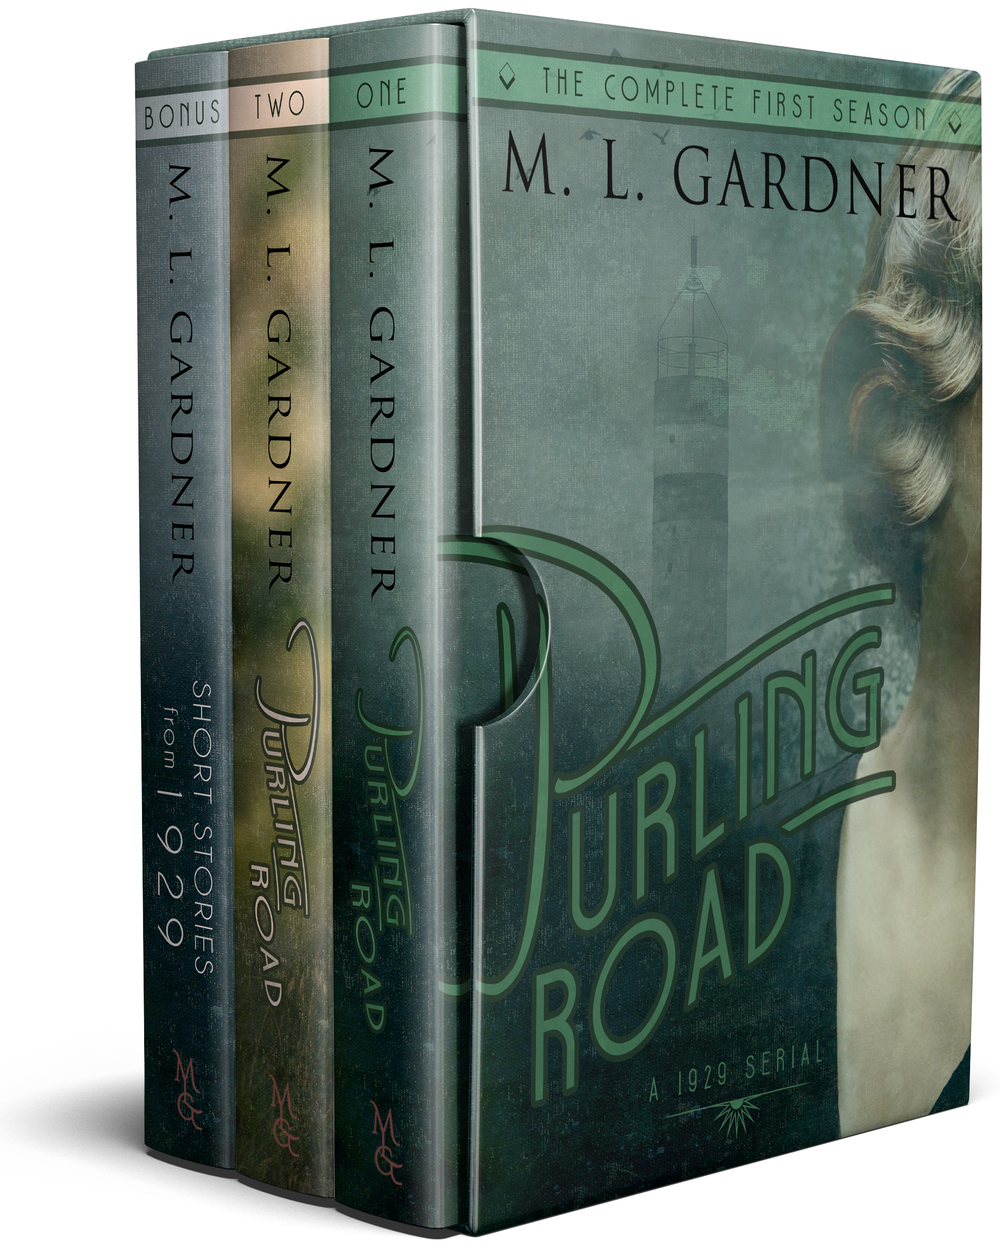 Purling Road: The Boxed Set